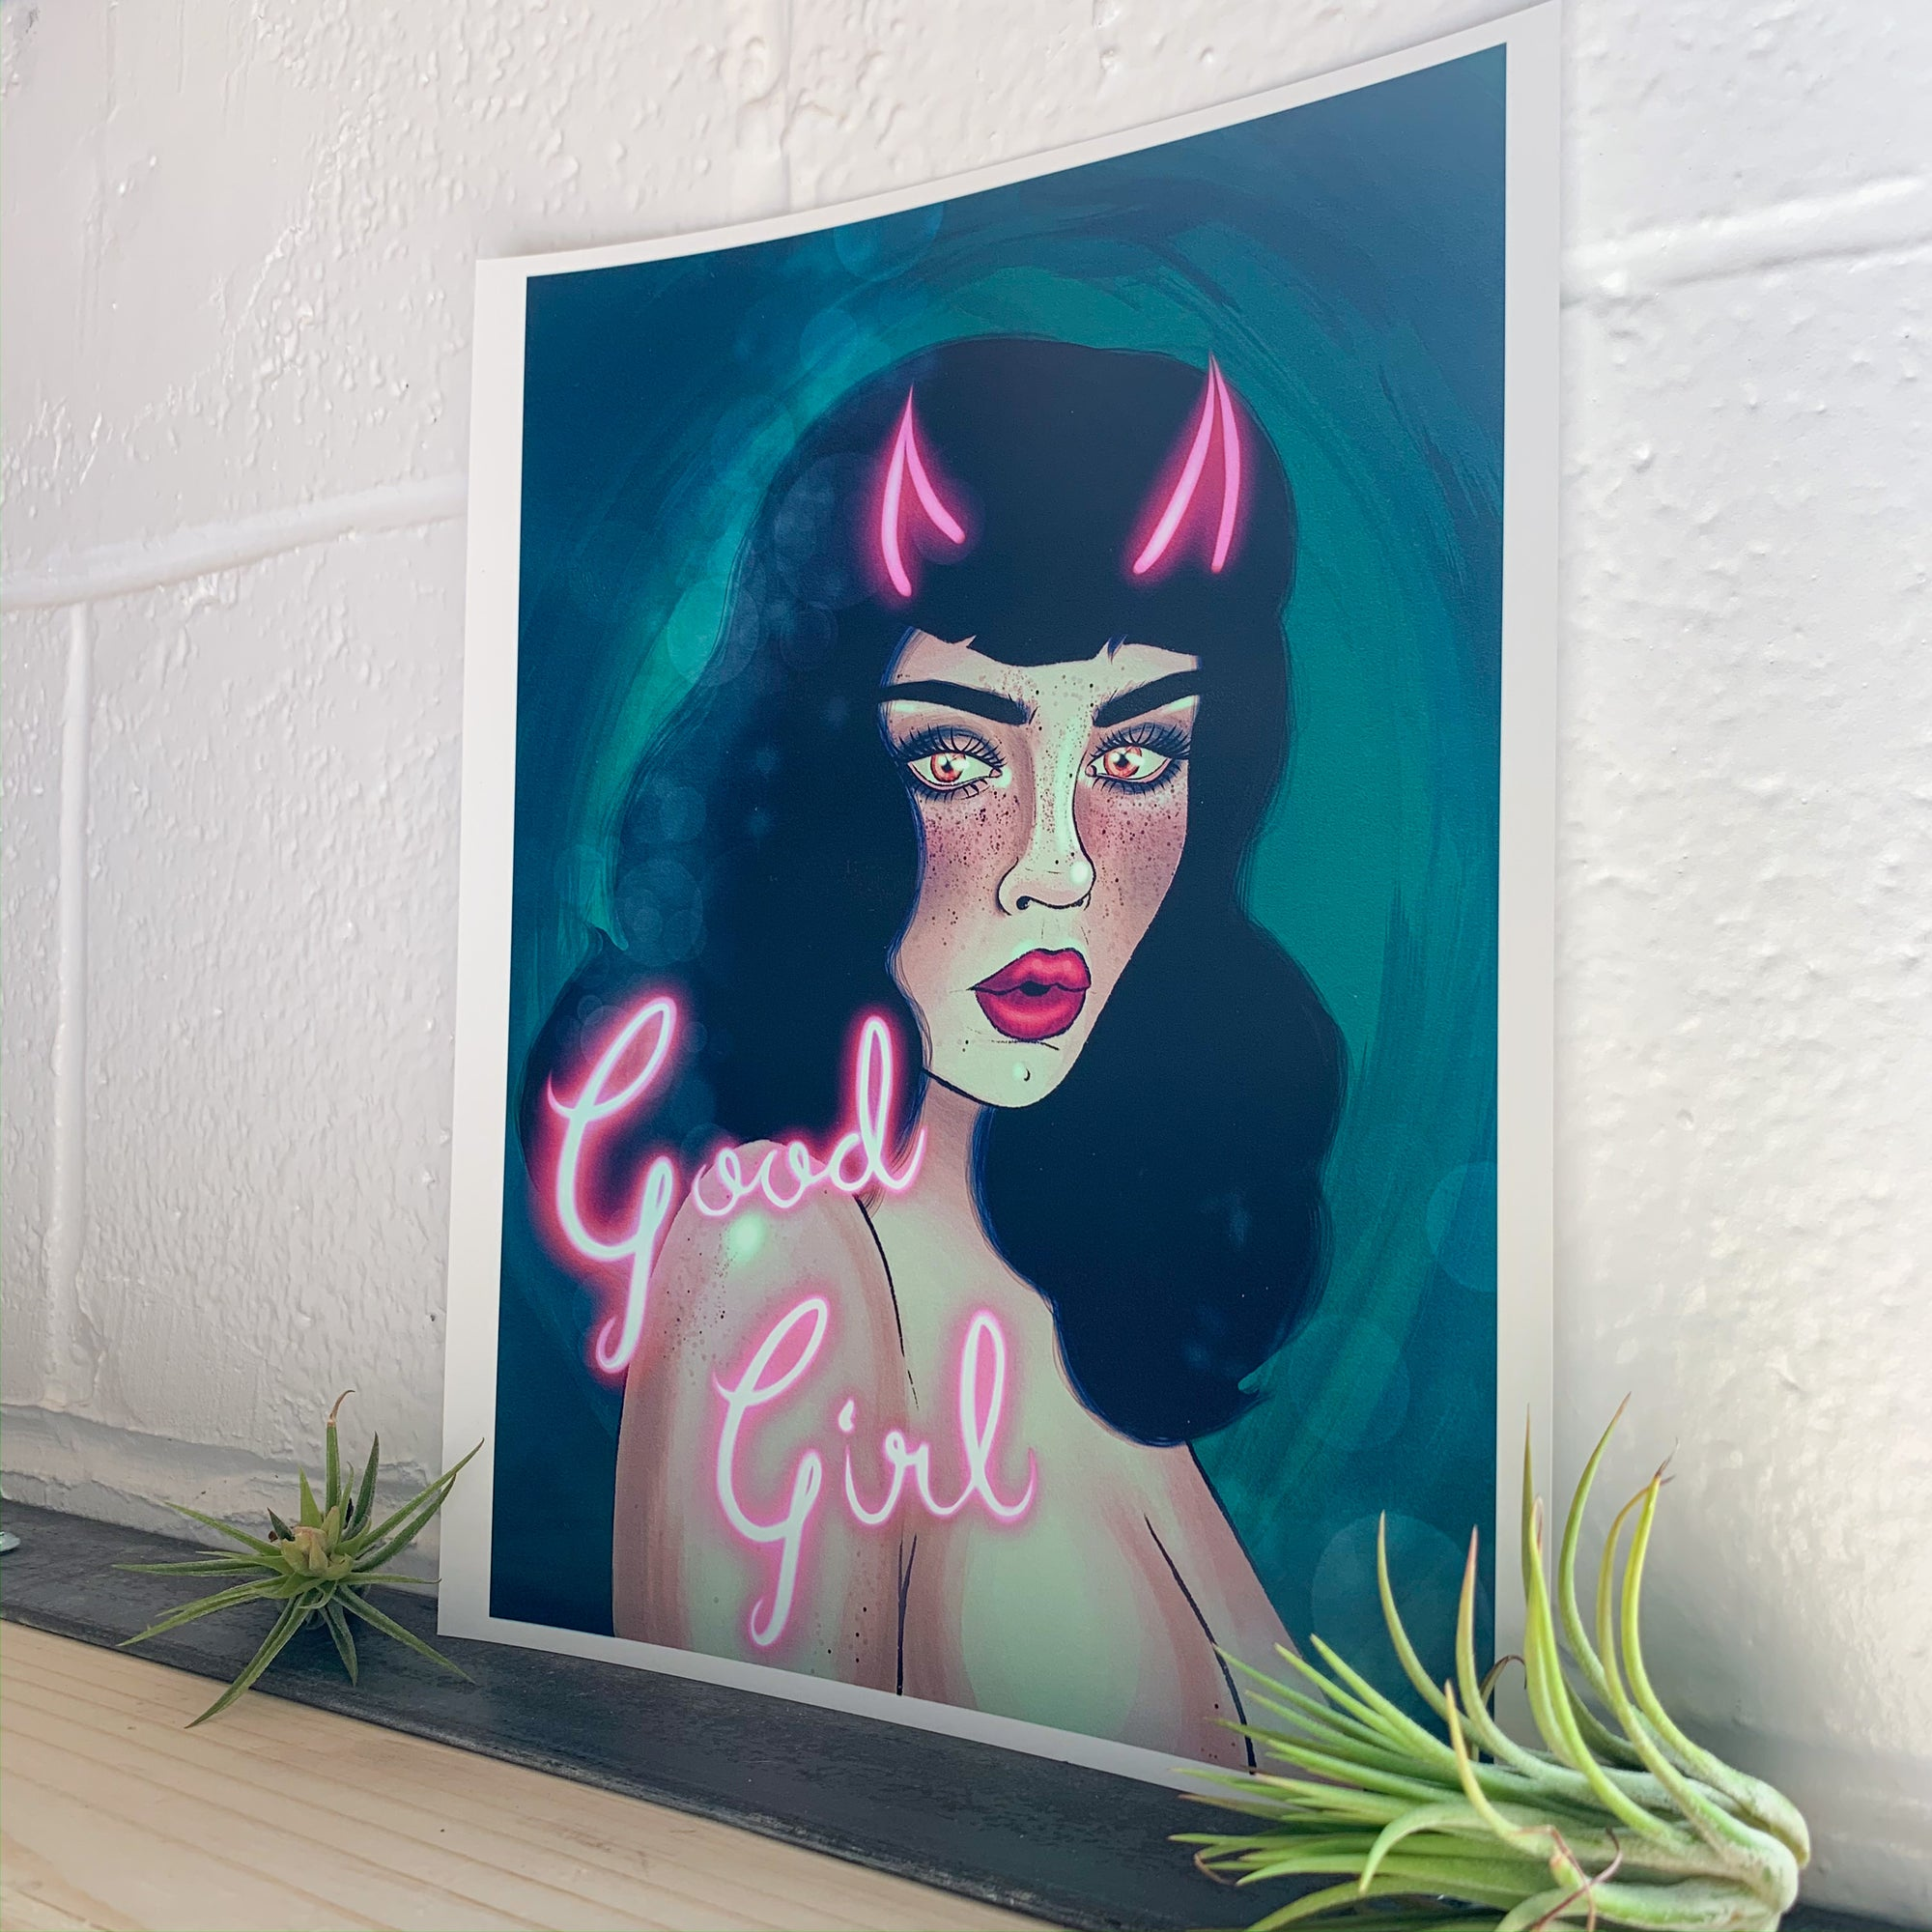 Good Girl Art Print - Femme Wares Niagara Local Small Business